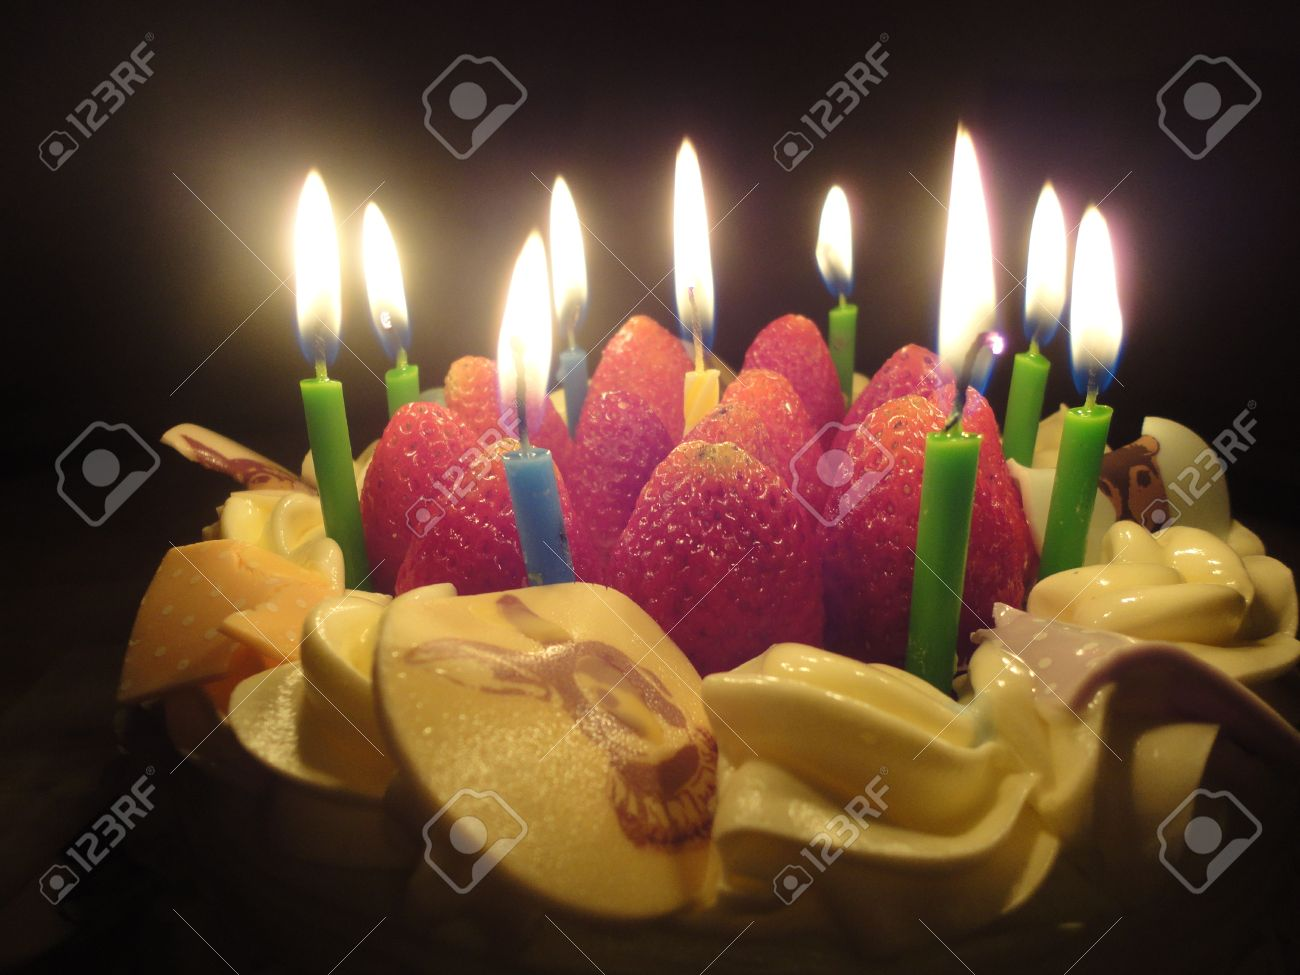 birthday cake with sweet strawberry and light candle in the dark & Birthday Cake With Sweet Strawberry And Light Candle In The Dark ...